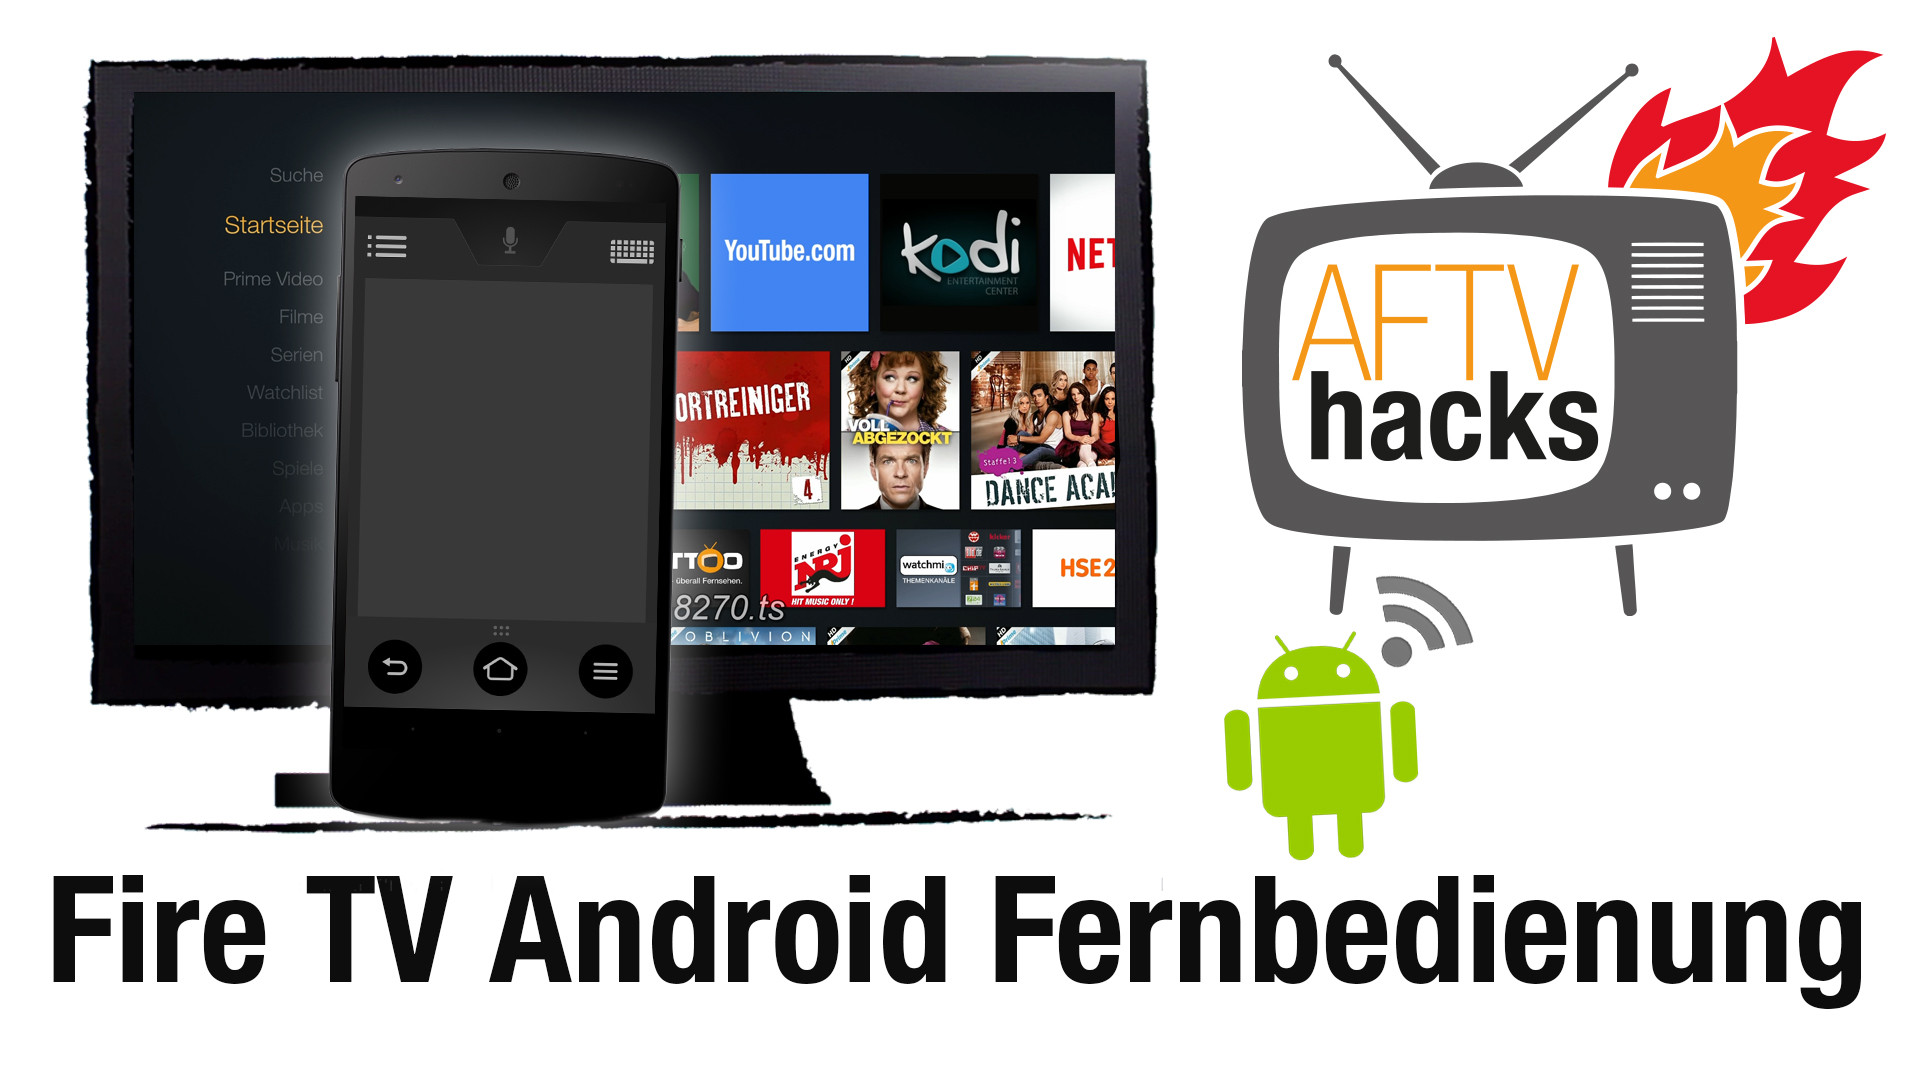 amazon fire tv fernbedienung android app. Black Bedroom Furniture Sets. Home Design Ideas